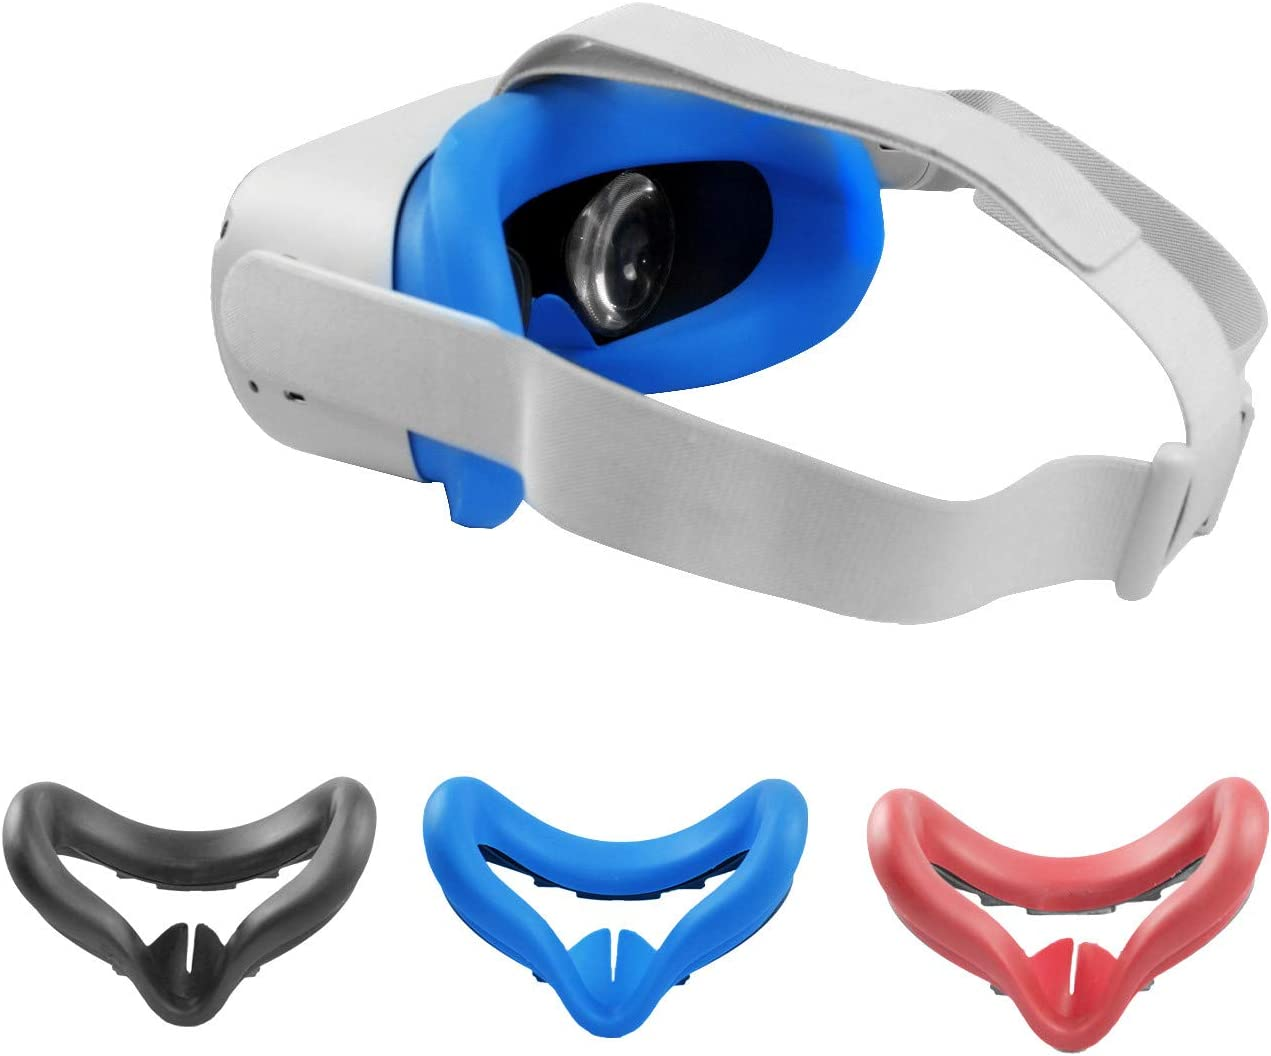 VR Face Silicone Cover for Oculus Quest 2 VR Headset Soft Anti-Sweat VR Washable Light Blocking Cover (Blue)